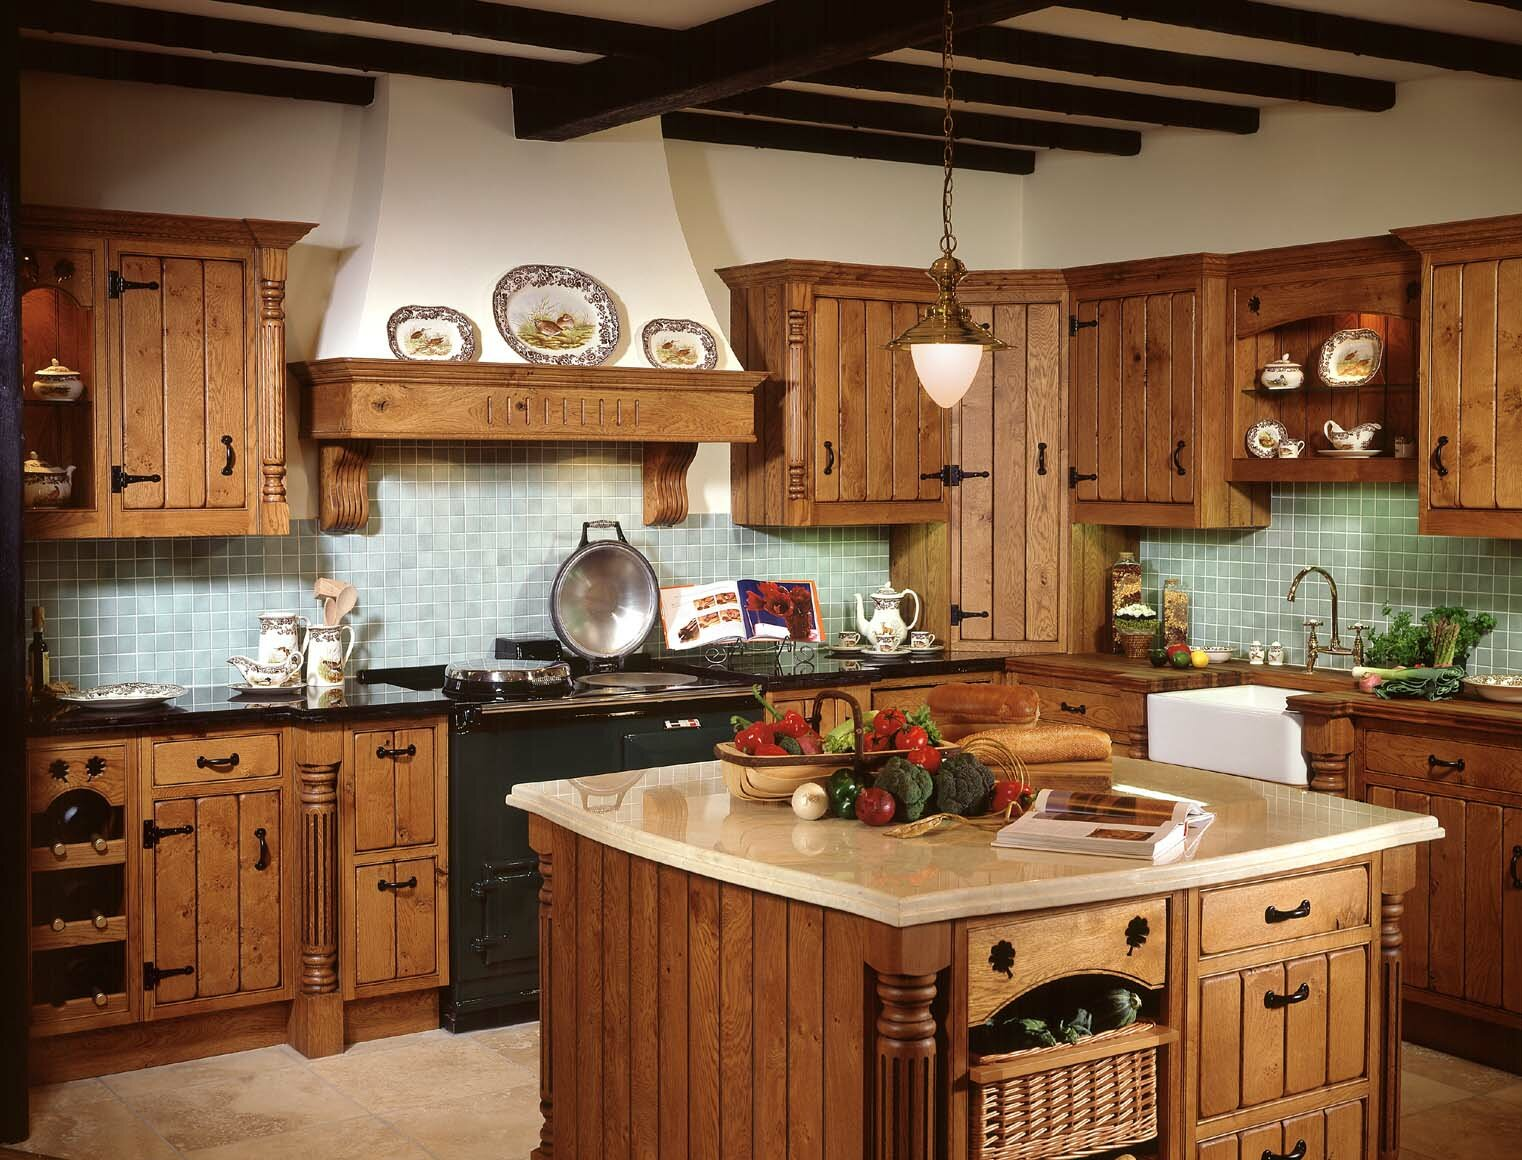 Captivating Southwestern Decor 1